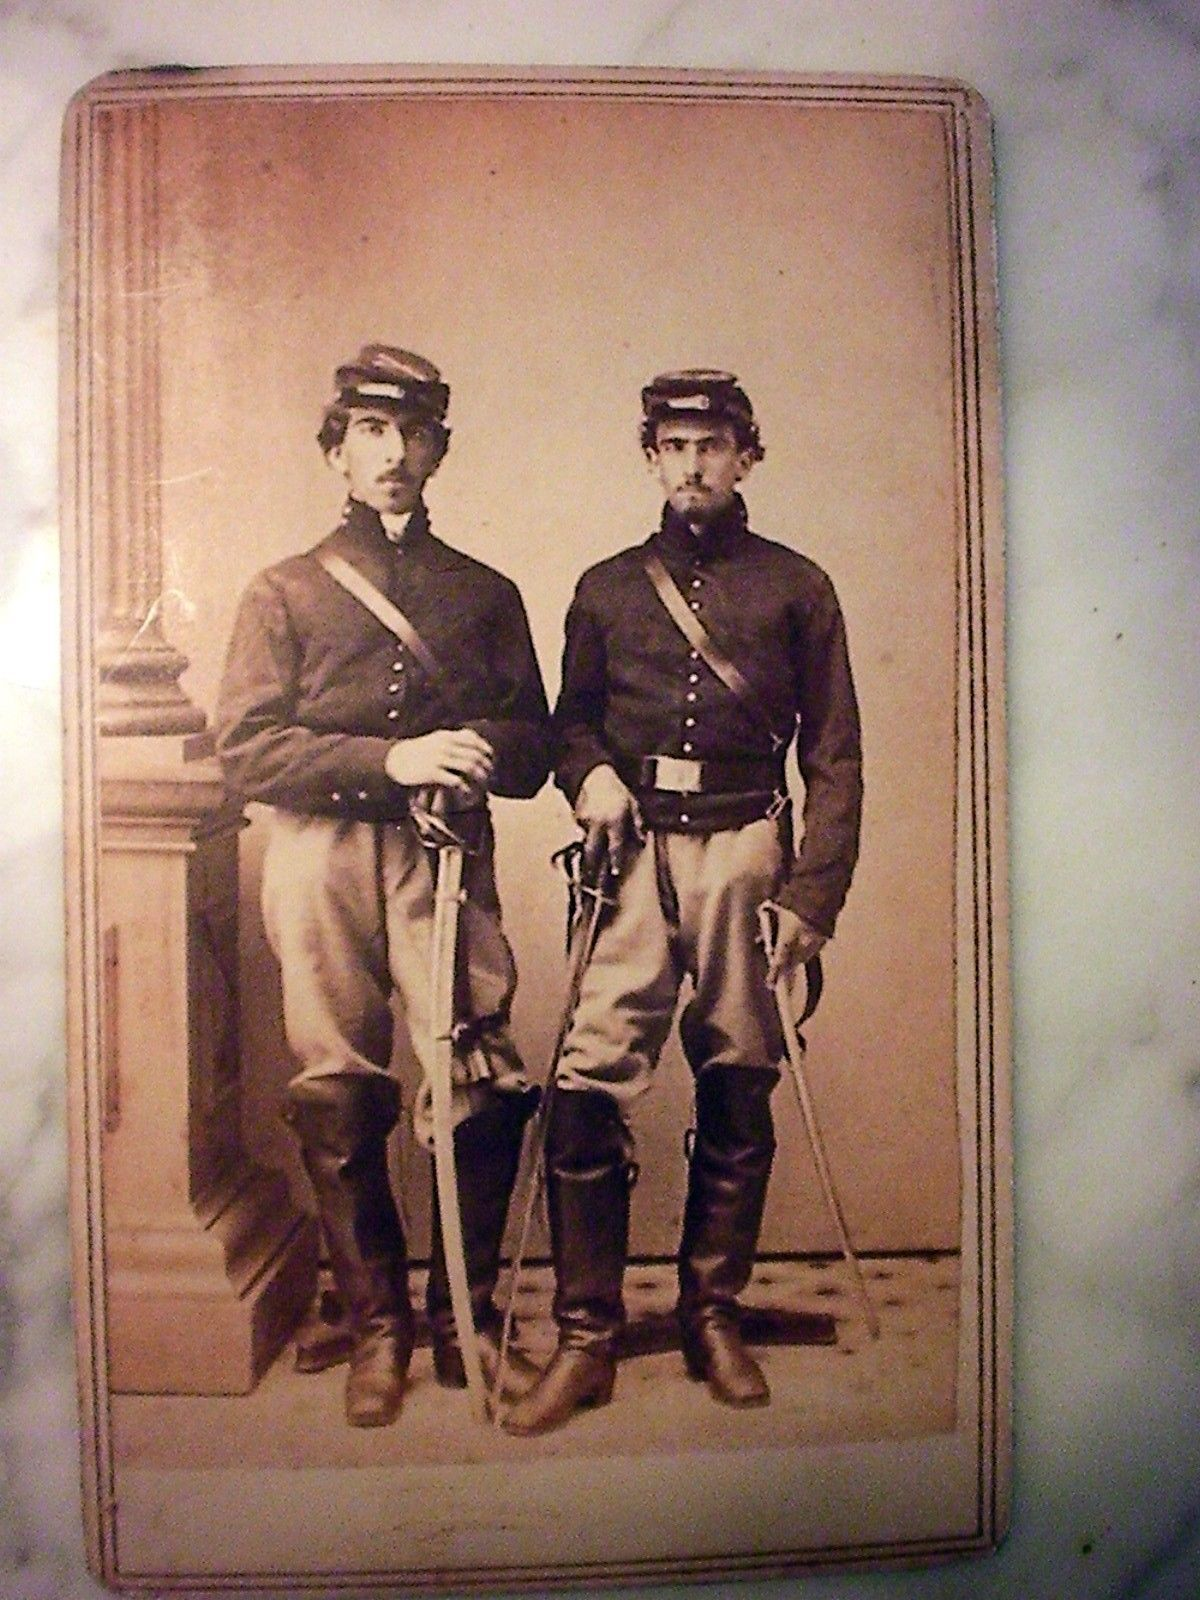 Photographs Militaria The Cheapest Price Antique Cdv Photograph Civil War Soldier Young Man With Cap